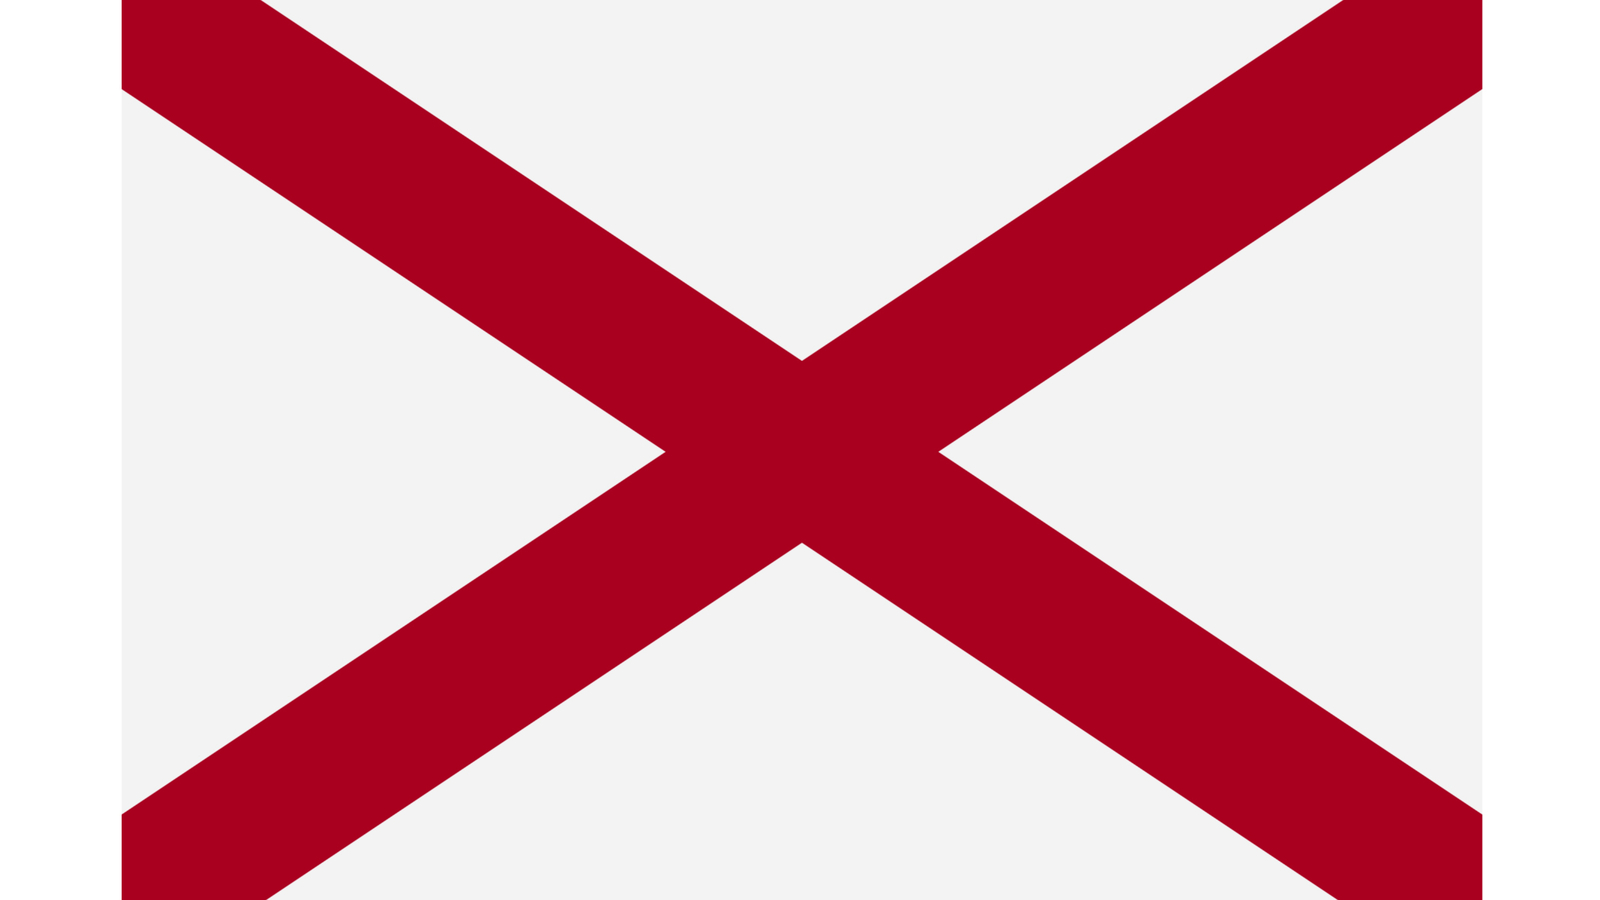 """According to the 1915 Alabama Official and Statistical Register, the flag """"was intended by the [state] Legislature to preserve in permanent form some of the more distinctive features of the Confederate battleflag, particularly the St. Andrew's cross."""" (Shutterstock via CNN Wire)"""